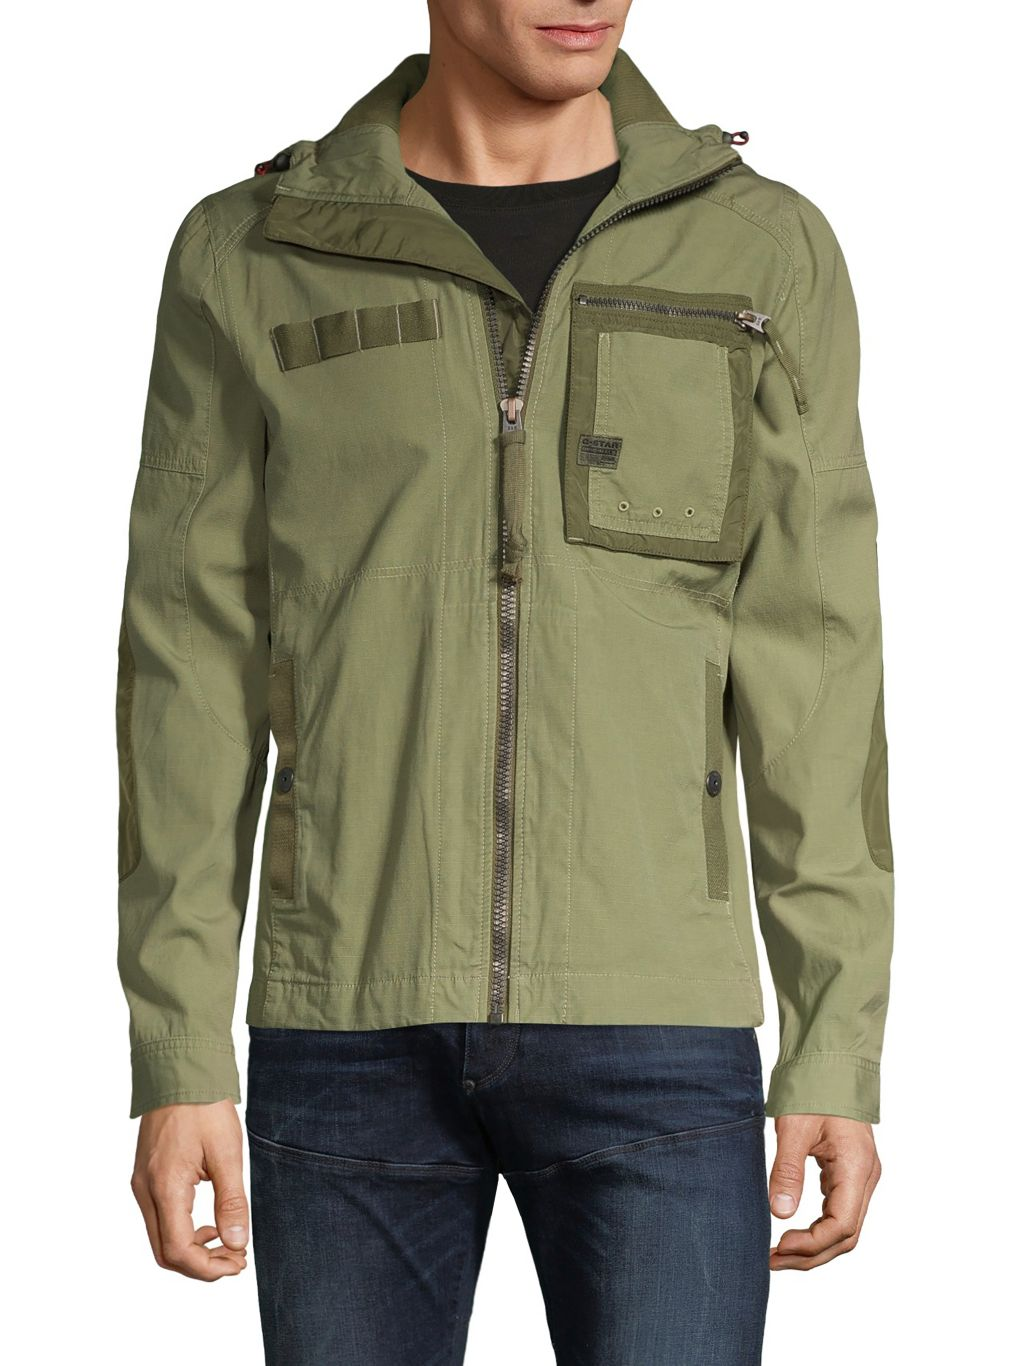 G-Star RAW Hooded Cotton-Blend Jacket